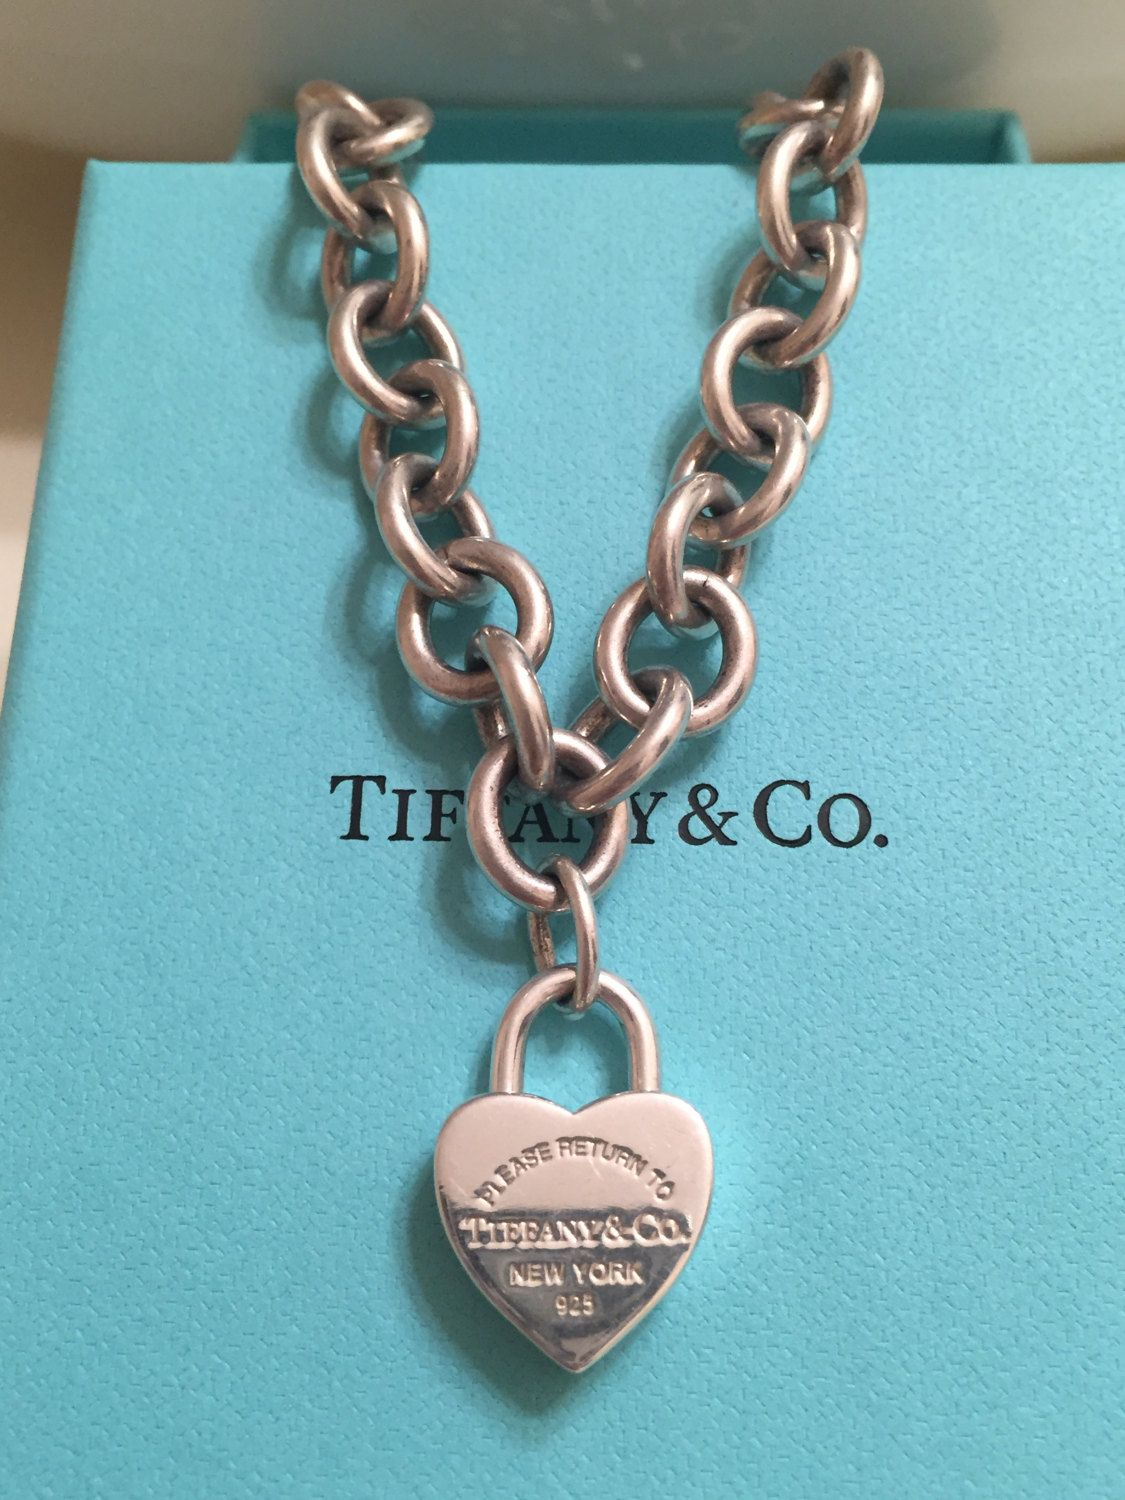 270cea292 Classic Authentic Tiffany & Co. Sterling Silver Return to Tiffany Heart Padlock  Necklace on Tiffany Chunky Chain by Tiffanytreasureshop on Etsy